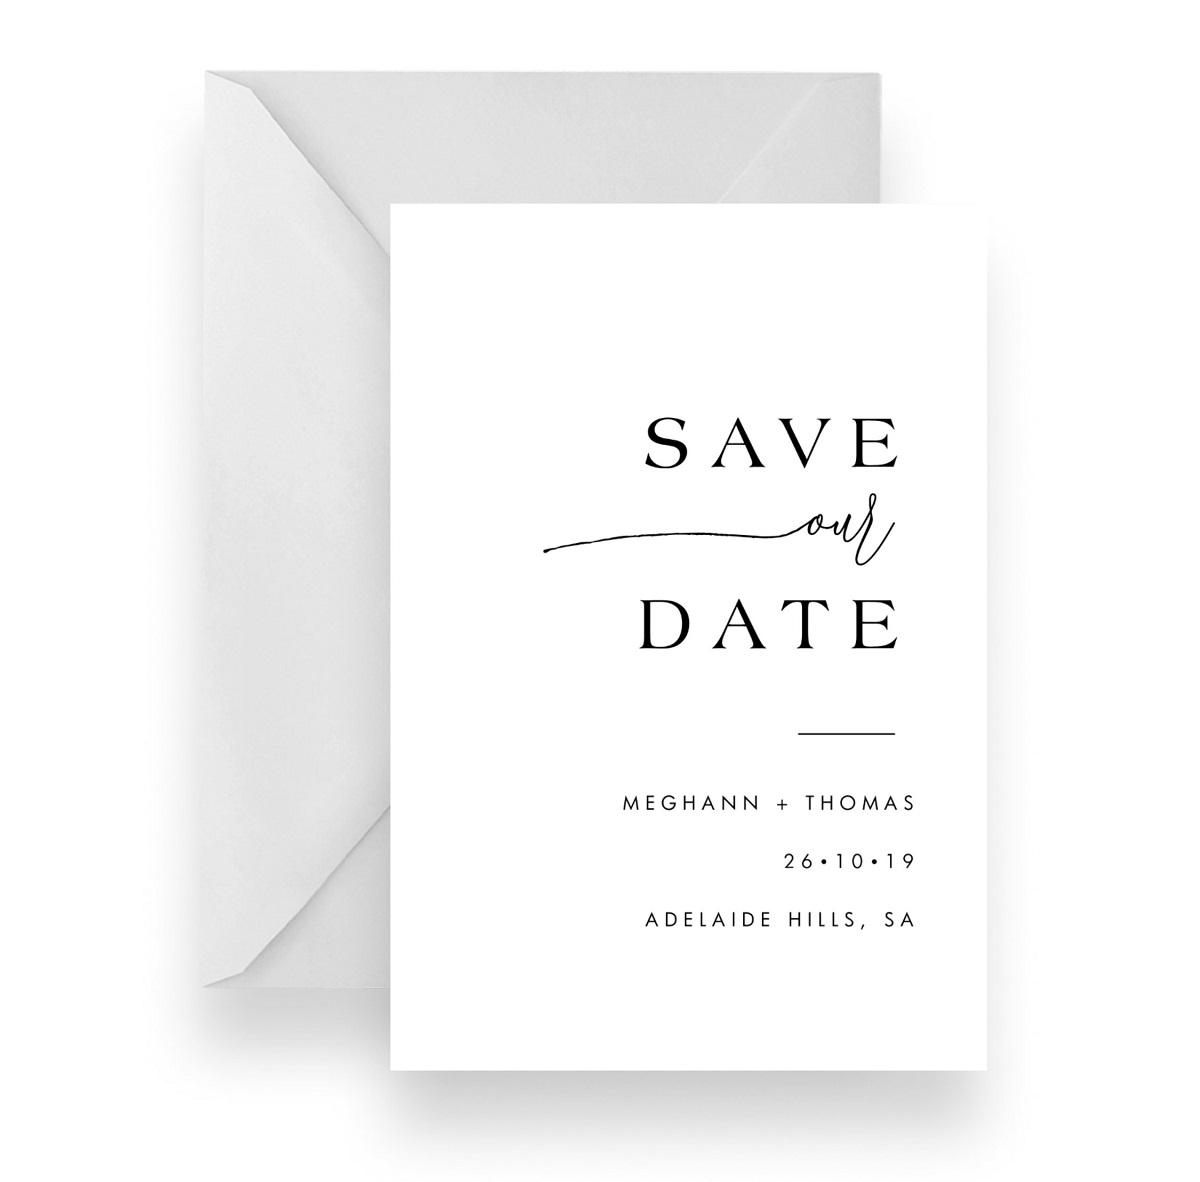 019 Stylish Save our Date Card WEB